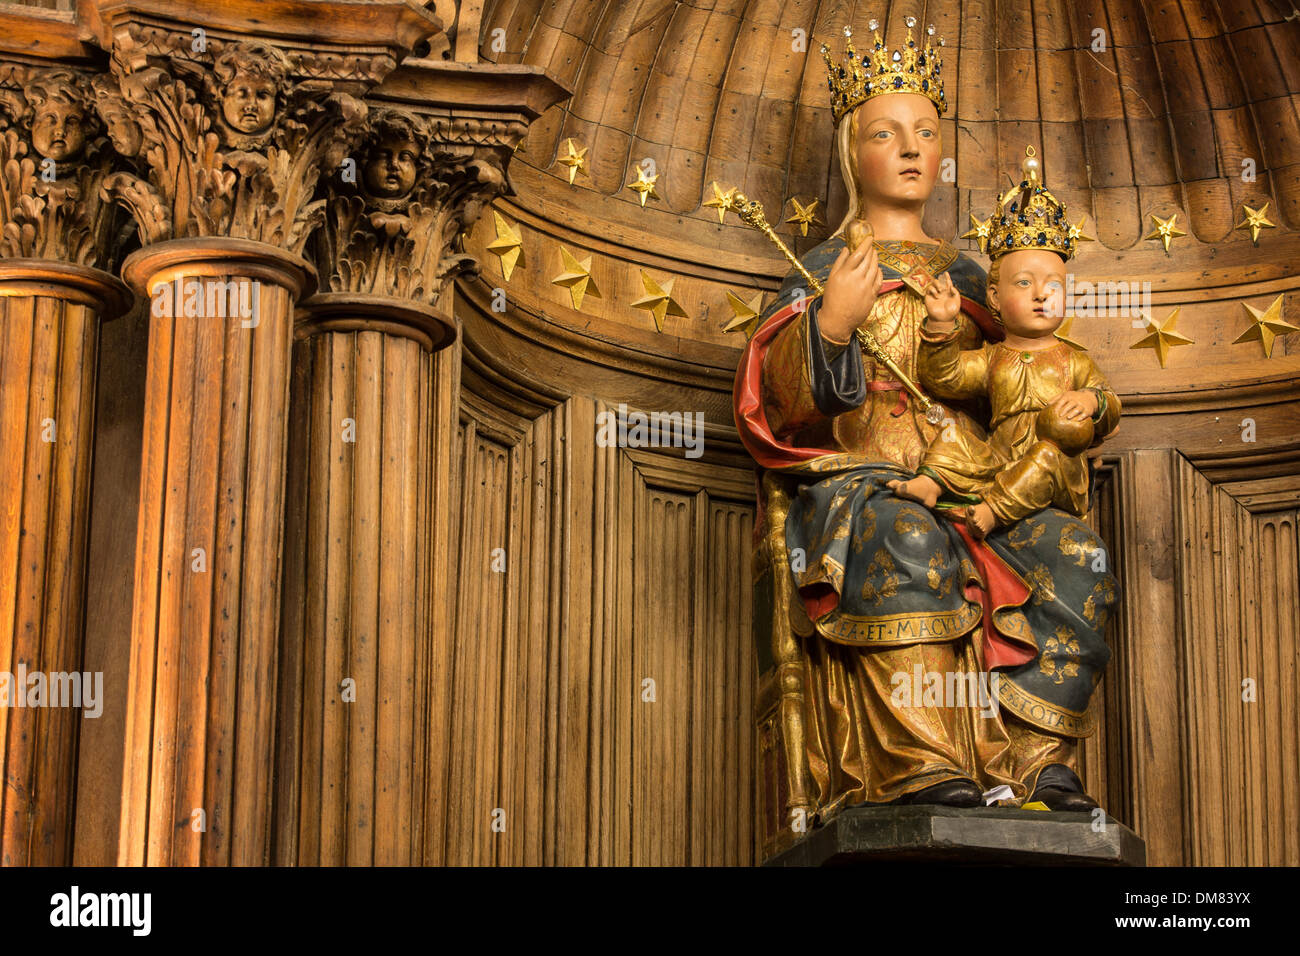 NOTRE-DAME DU PILIER, 16TH CENTURY POLYCHROME STATUE MADE OF PEAR TREE WOOD, GIVEN A CROWN IN 1855, (CALLED THE BLACK VIRGIN BEFORE ITS RESTORATION), CHARTRES CATHEDRAL, EURE-ET-LOIR (28), FRANCE - Stock Image